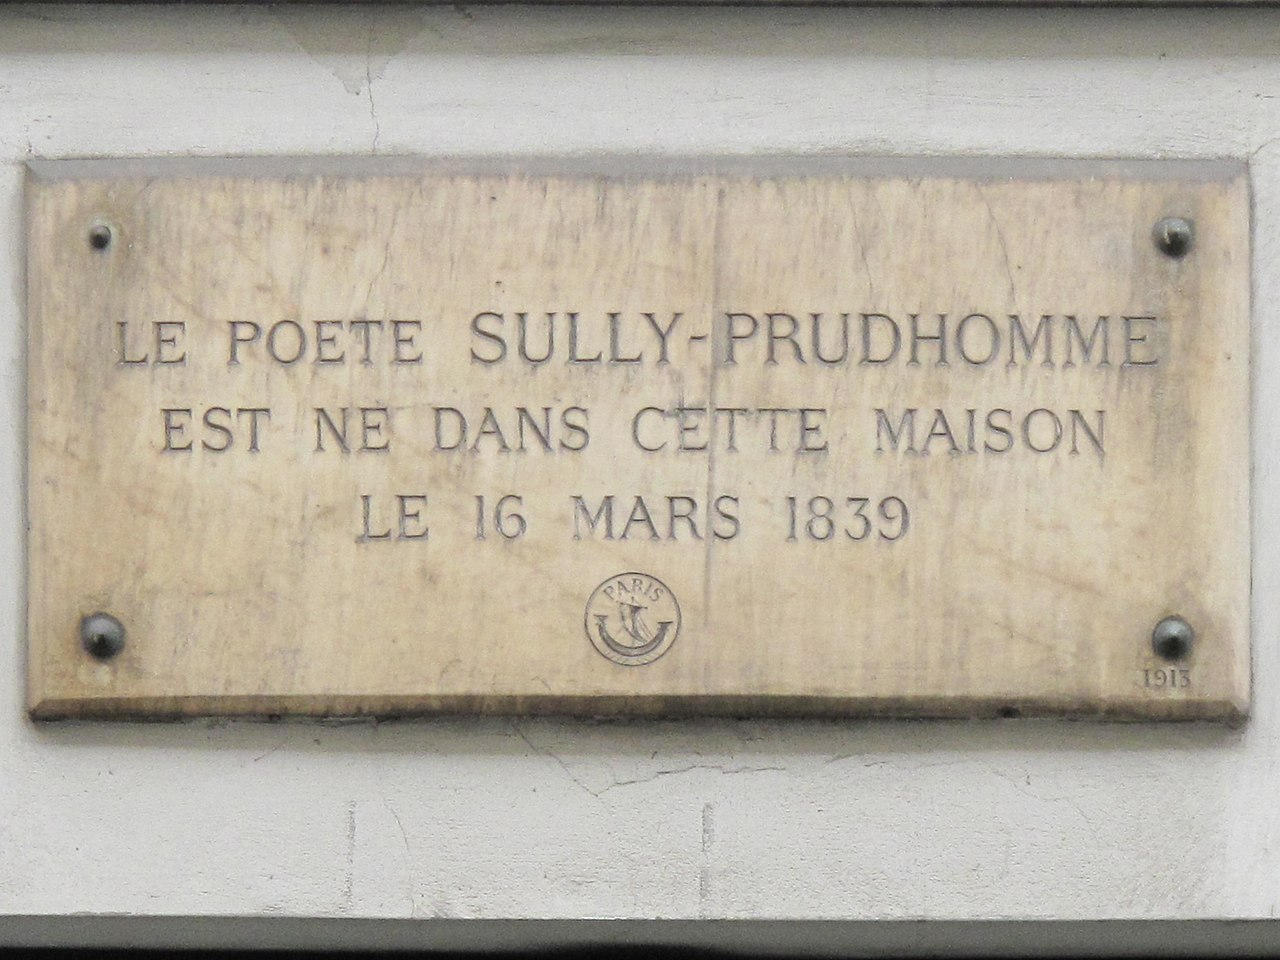 https://upload.wikimedia.org/wikipedia/commons/thumb/7/76/Plaque_Sully_Prudhomme.jpg/1280px-Plaque_Sully_Prudhomme.jpg